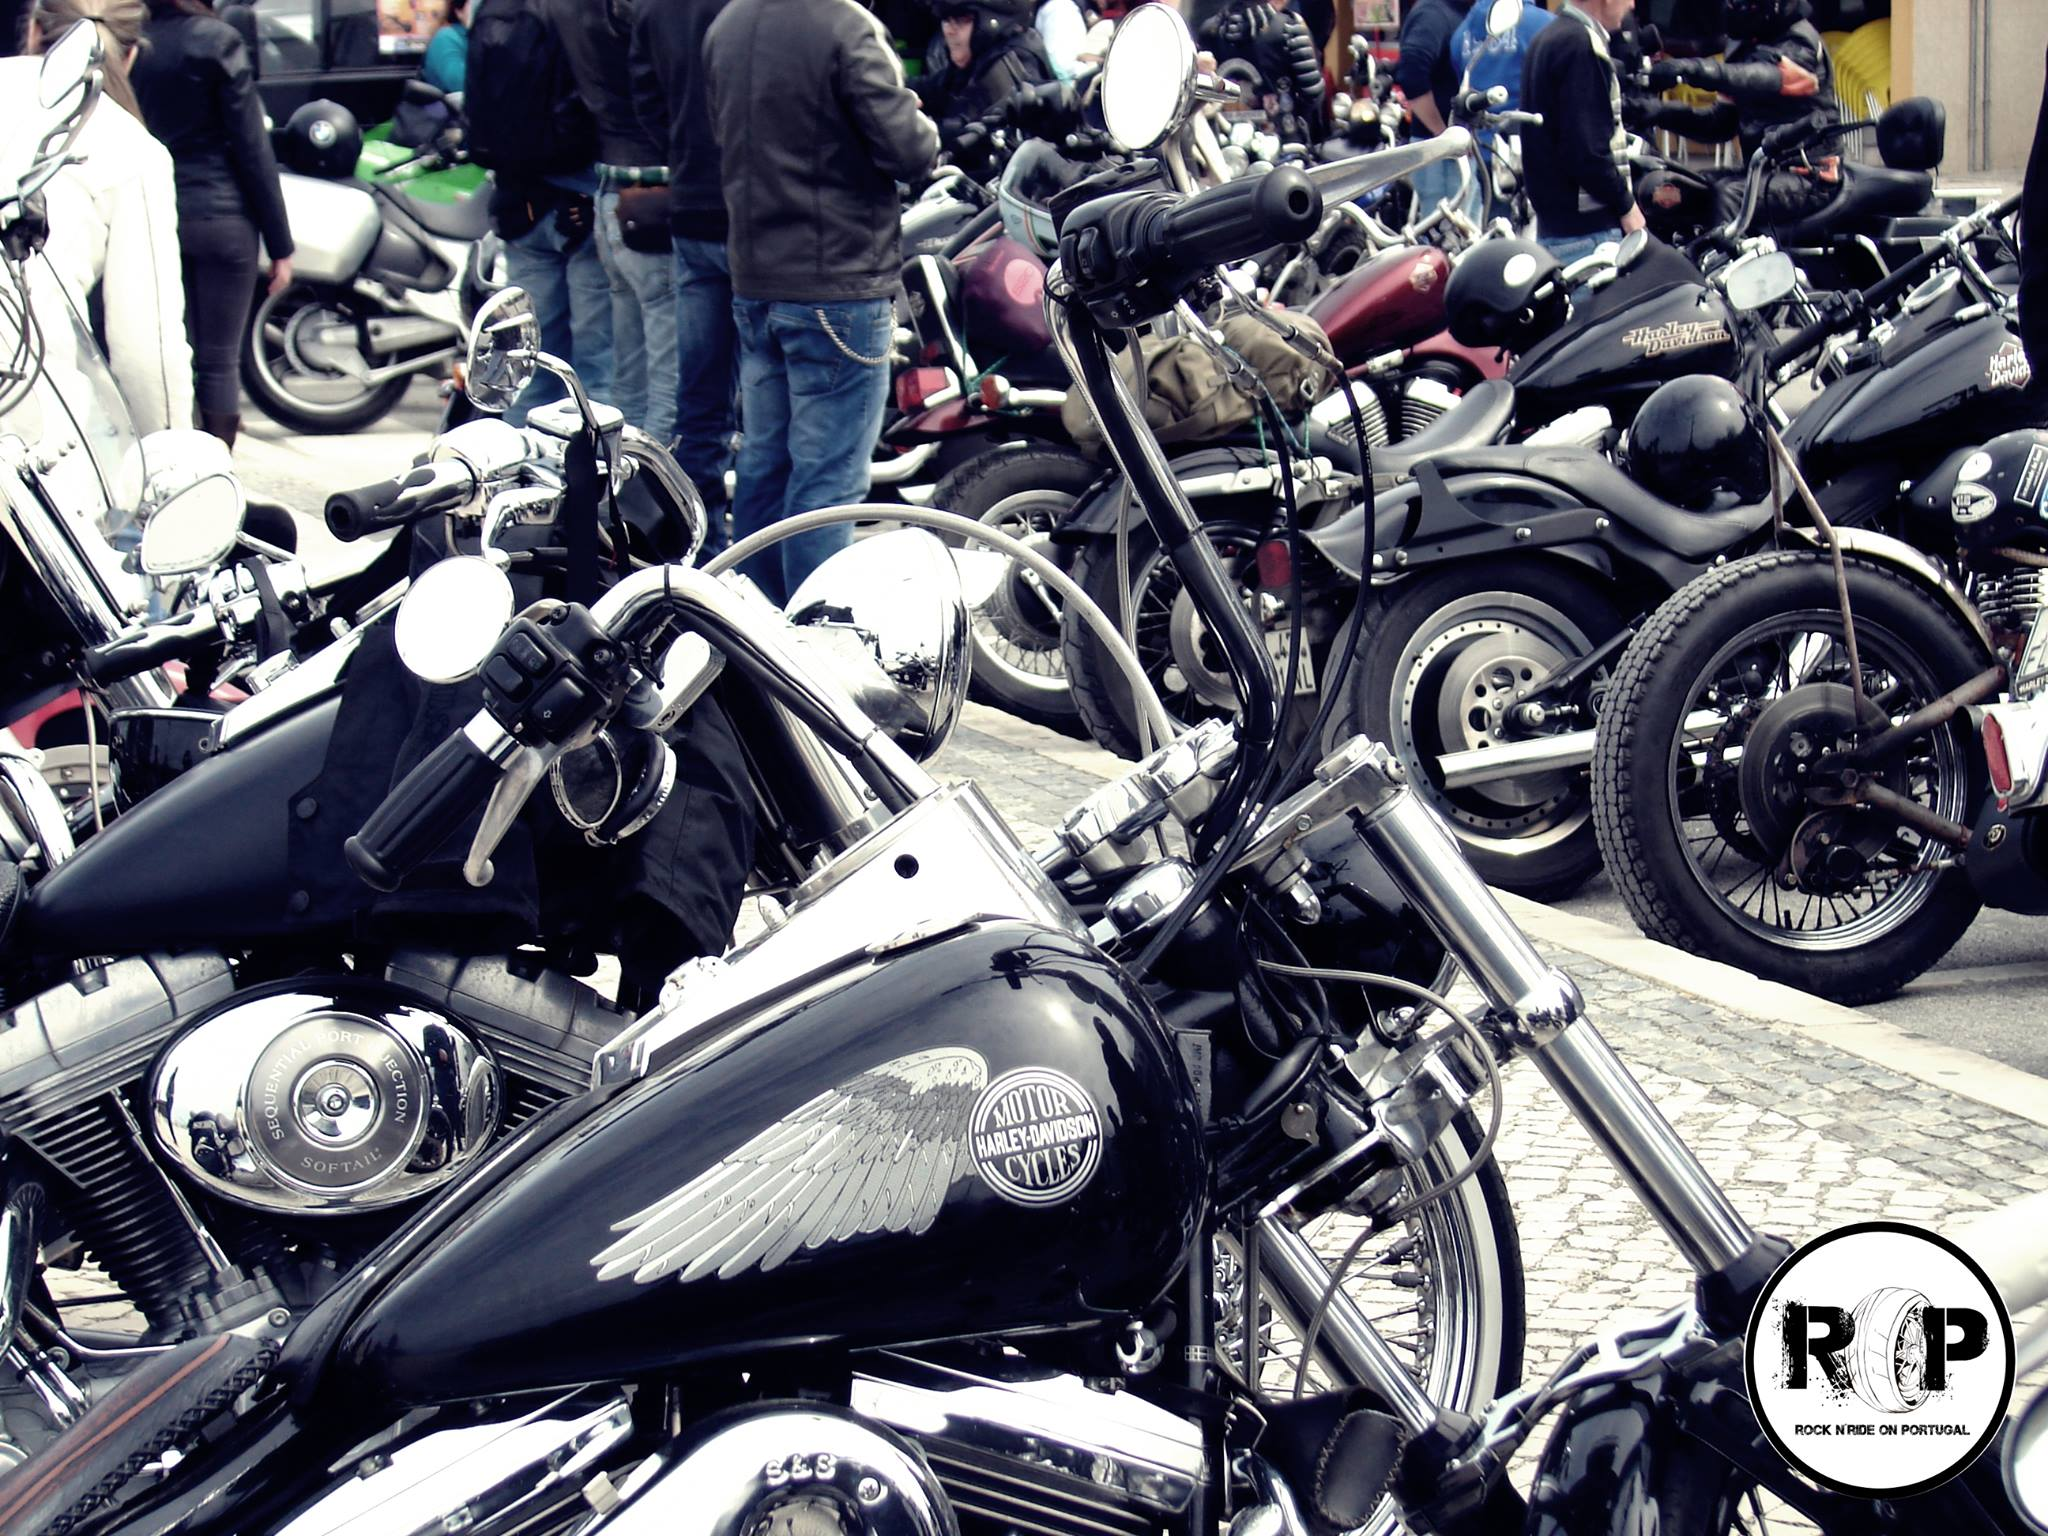 Harley Davidson Freedom Day